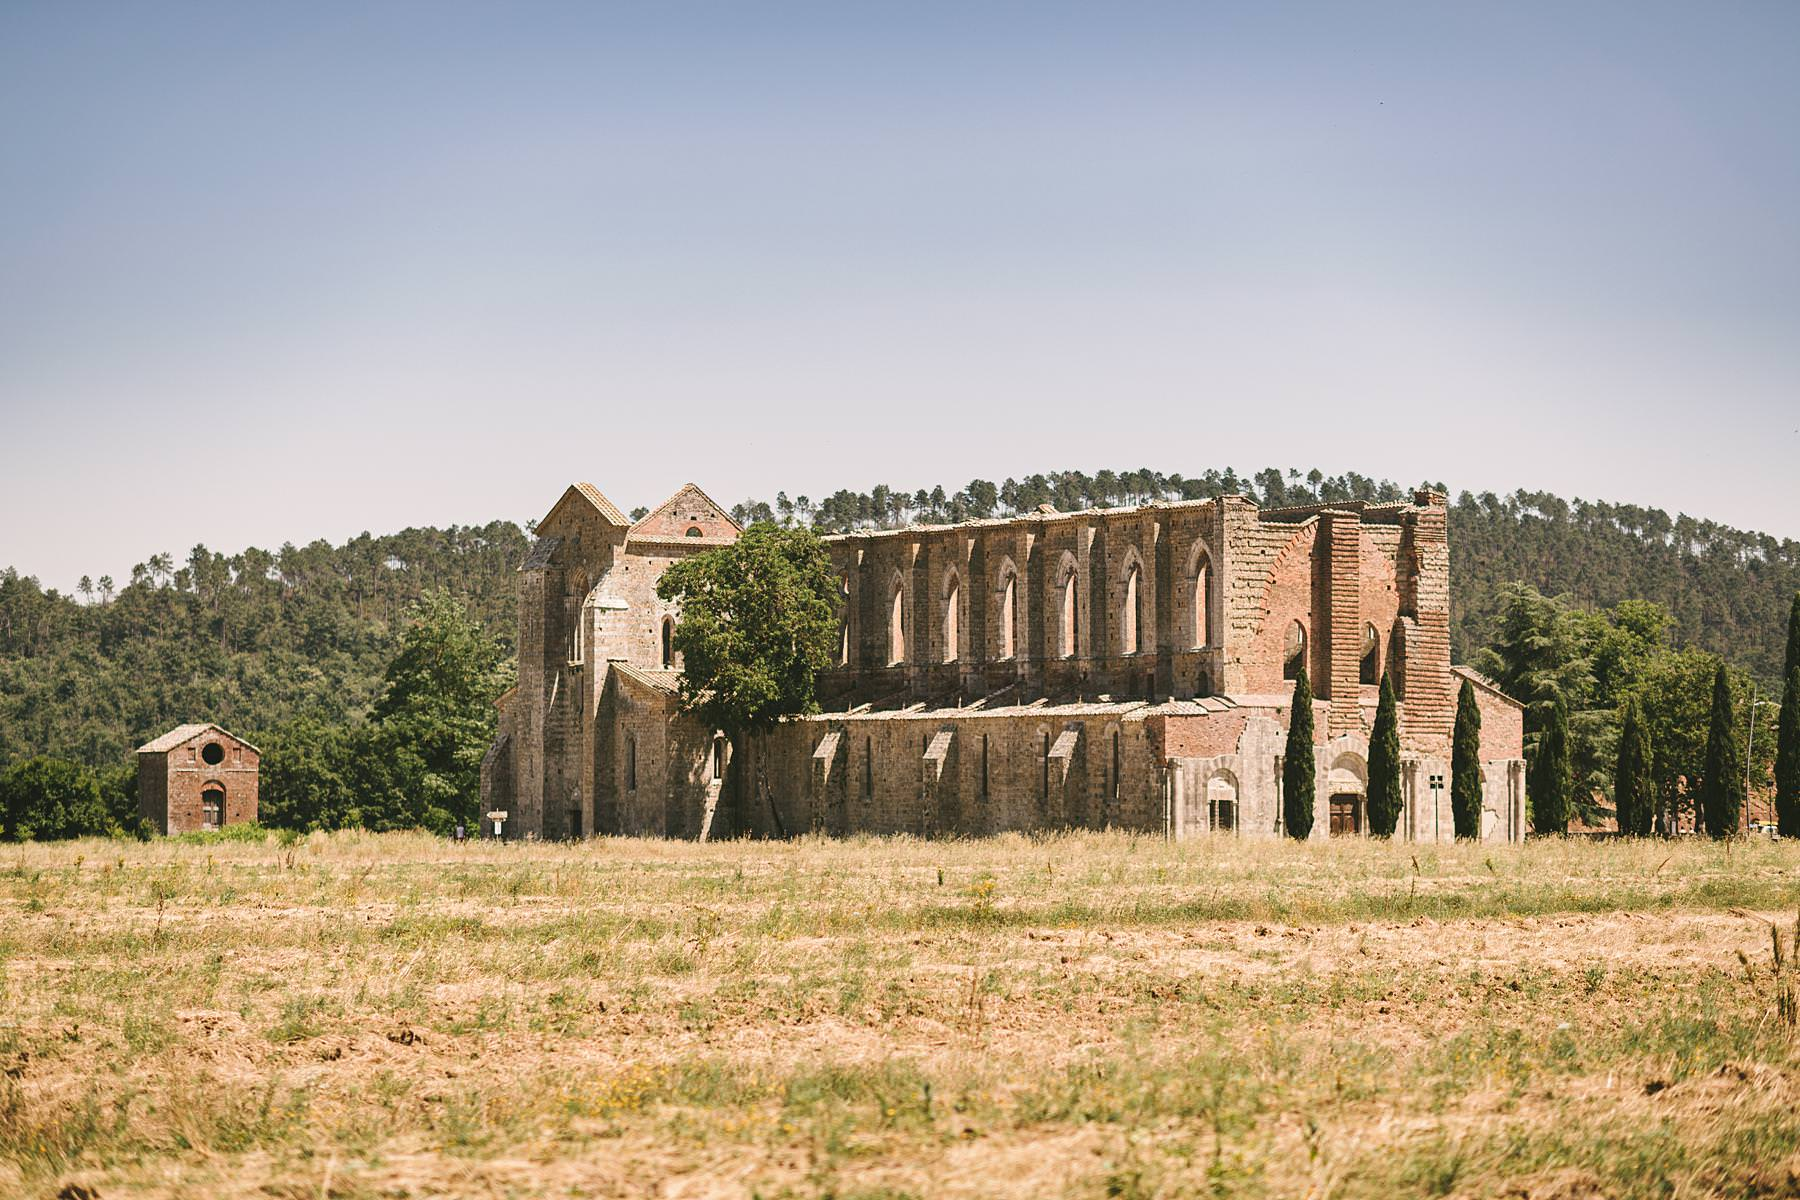 San Galgano, an unforgettable frame. Some places are so beautiful that they exceed any possible imagination. San Galgano is one of them. Imagine a huge abbey erected in the Middle Age to commemorate a saint, or better yet a former knight who gave up on his old life, stuck his sword in a rock and dedicated himself to religious faith. San Galgano abbey doesn't have a roof anymore, which makes it even more fascinating, and its history and appearance turn it into a one-of-a-kind venue for your big or small wedding in Italy